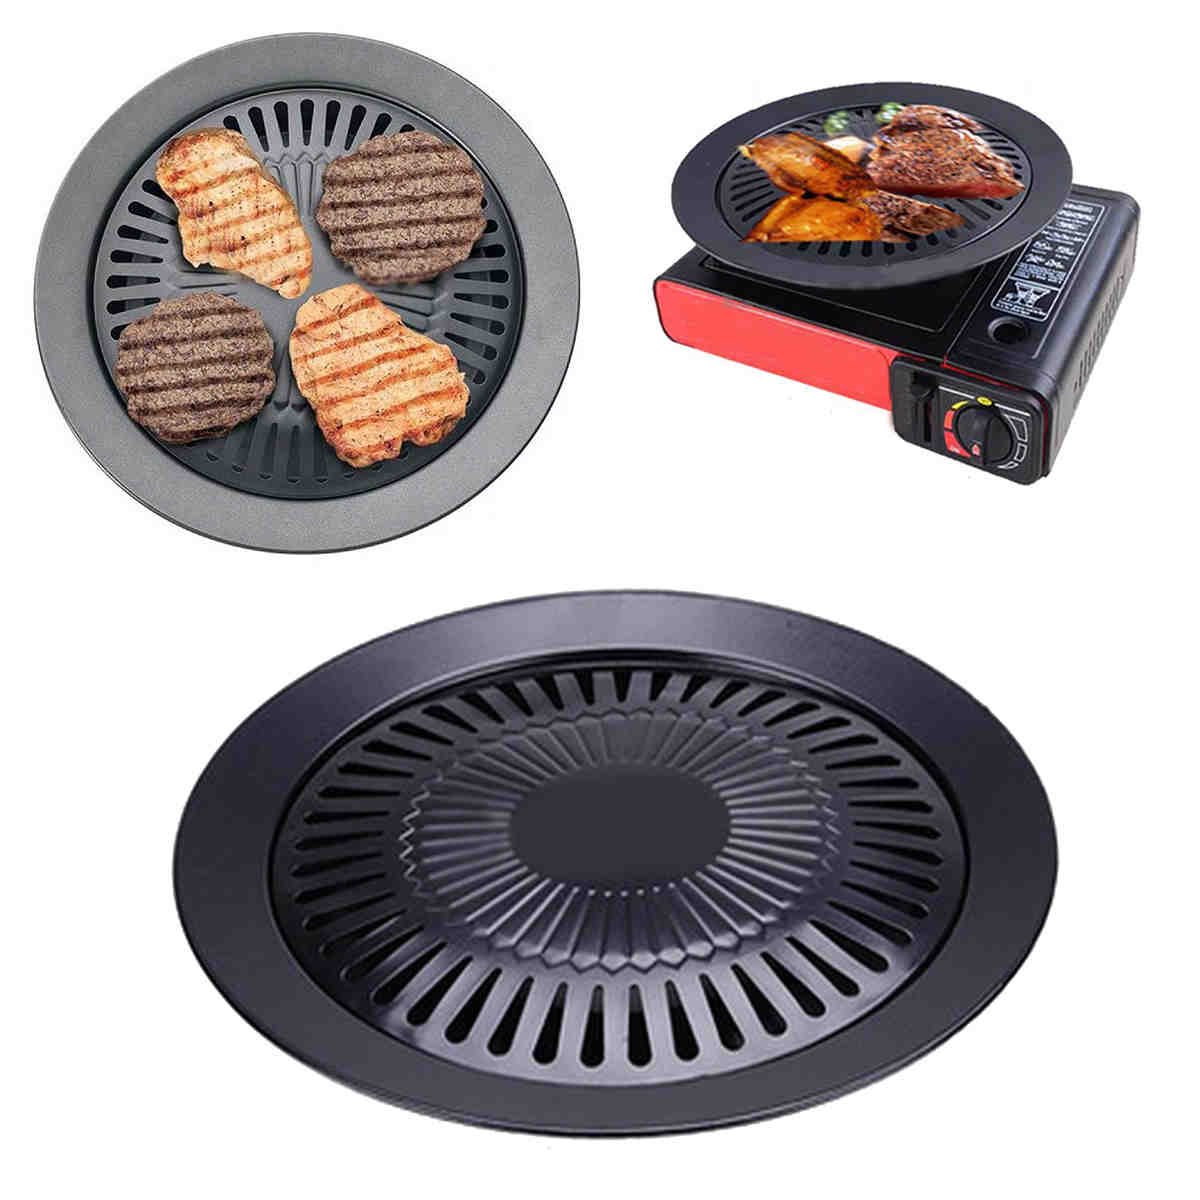 JX-LCLYL Non-stick Smokeless Stovetop Barbecue BBQ Grill Kitchen Pan Griddle Indoor Black